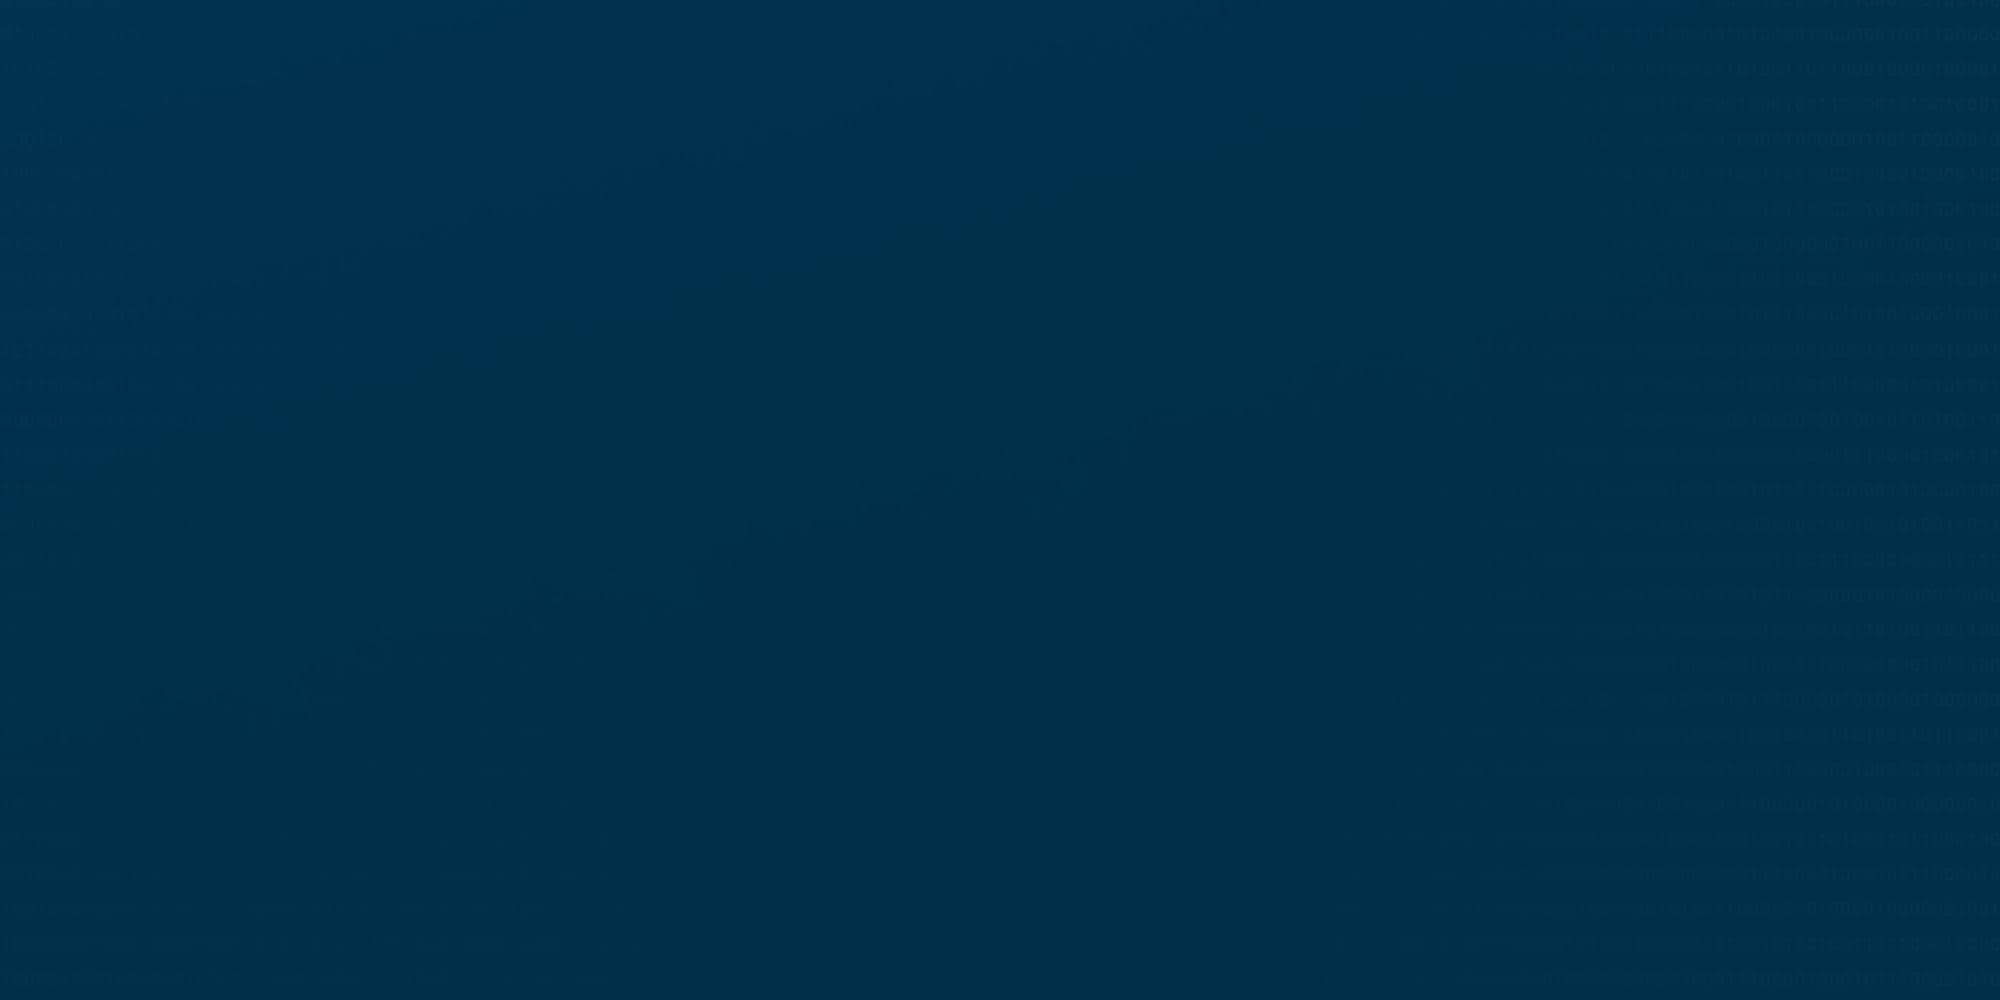 Midnight blue gradient with transparent numbers overlay